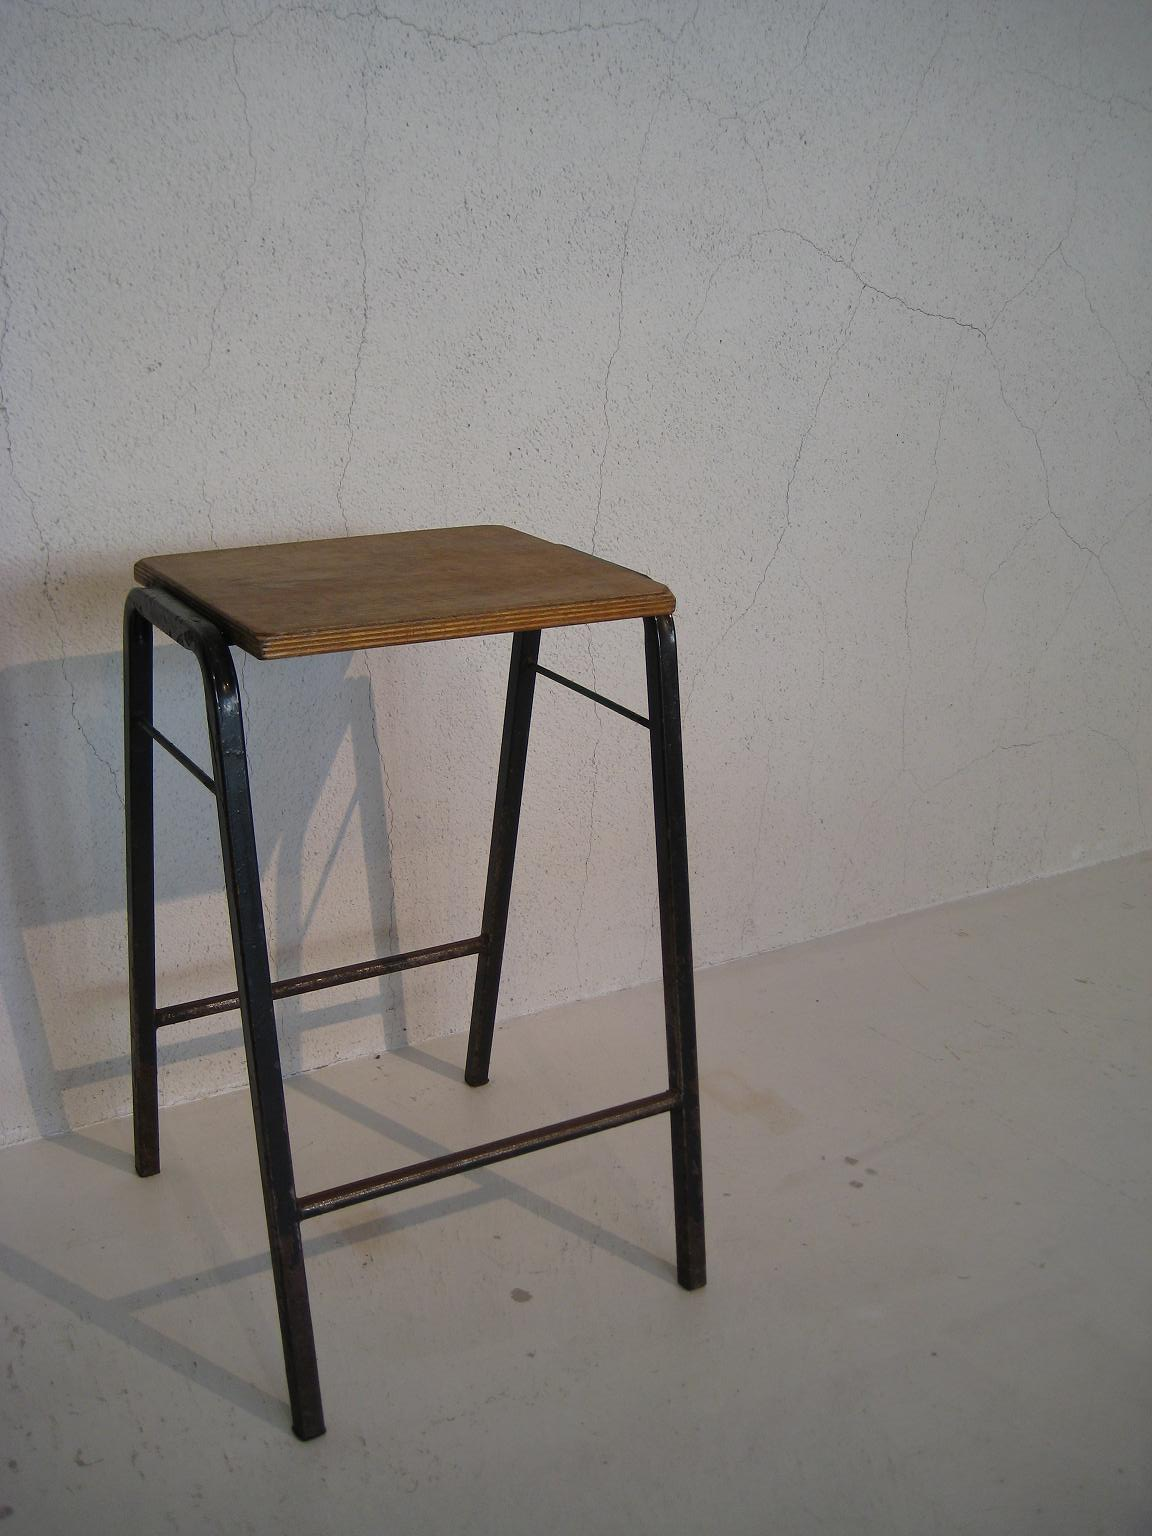 ANTIQUE STOOL 入荷_c0146581_14221286.jpg